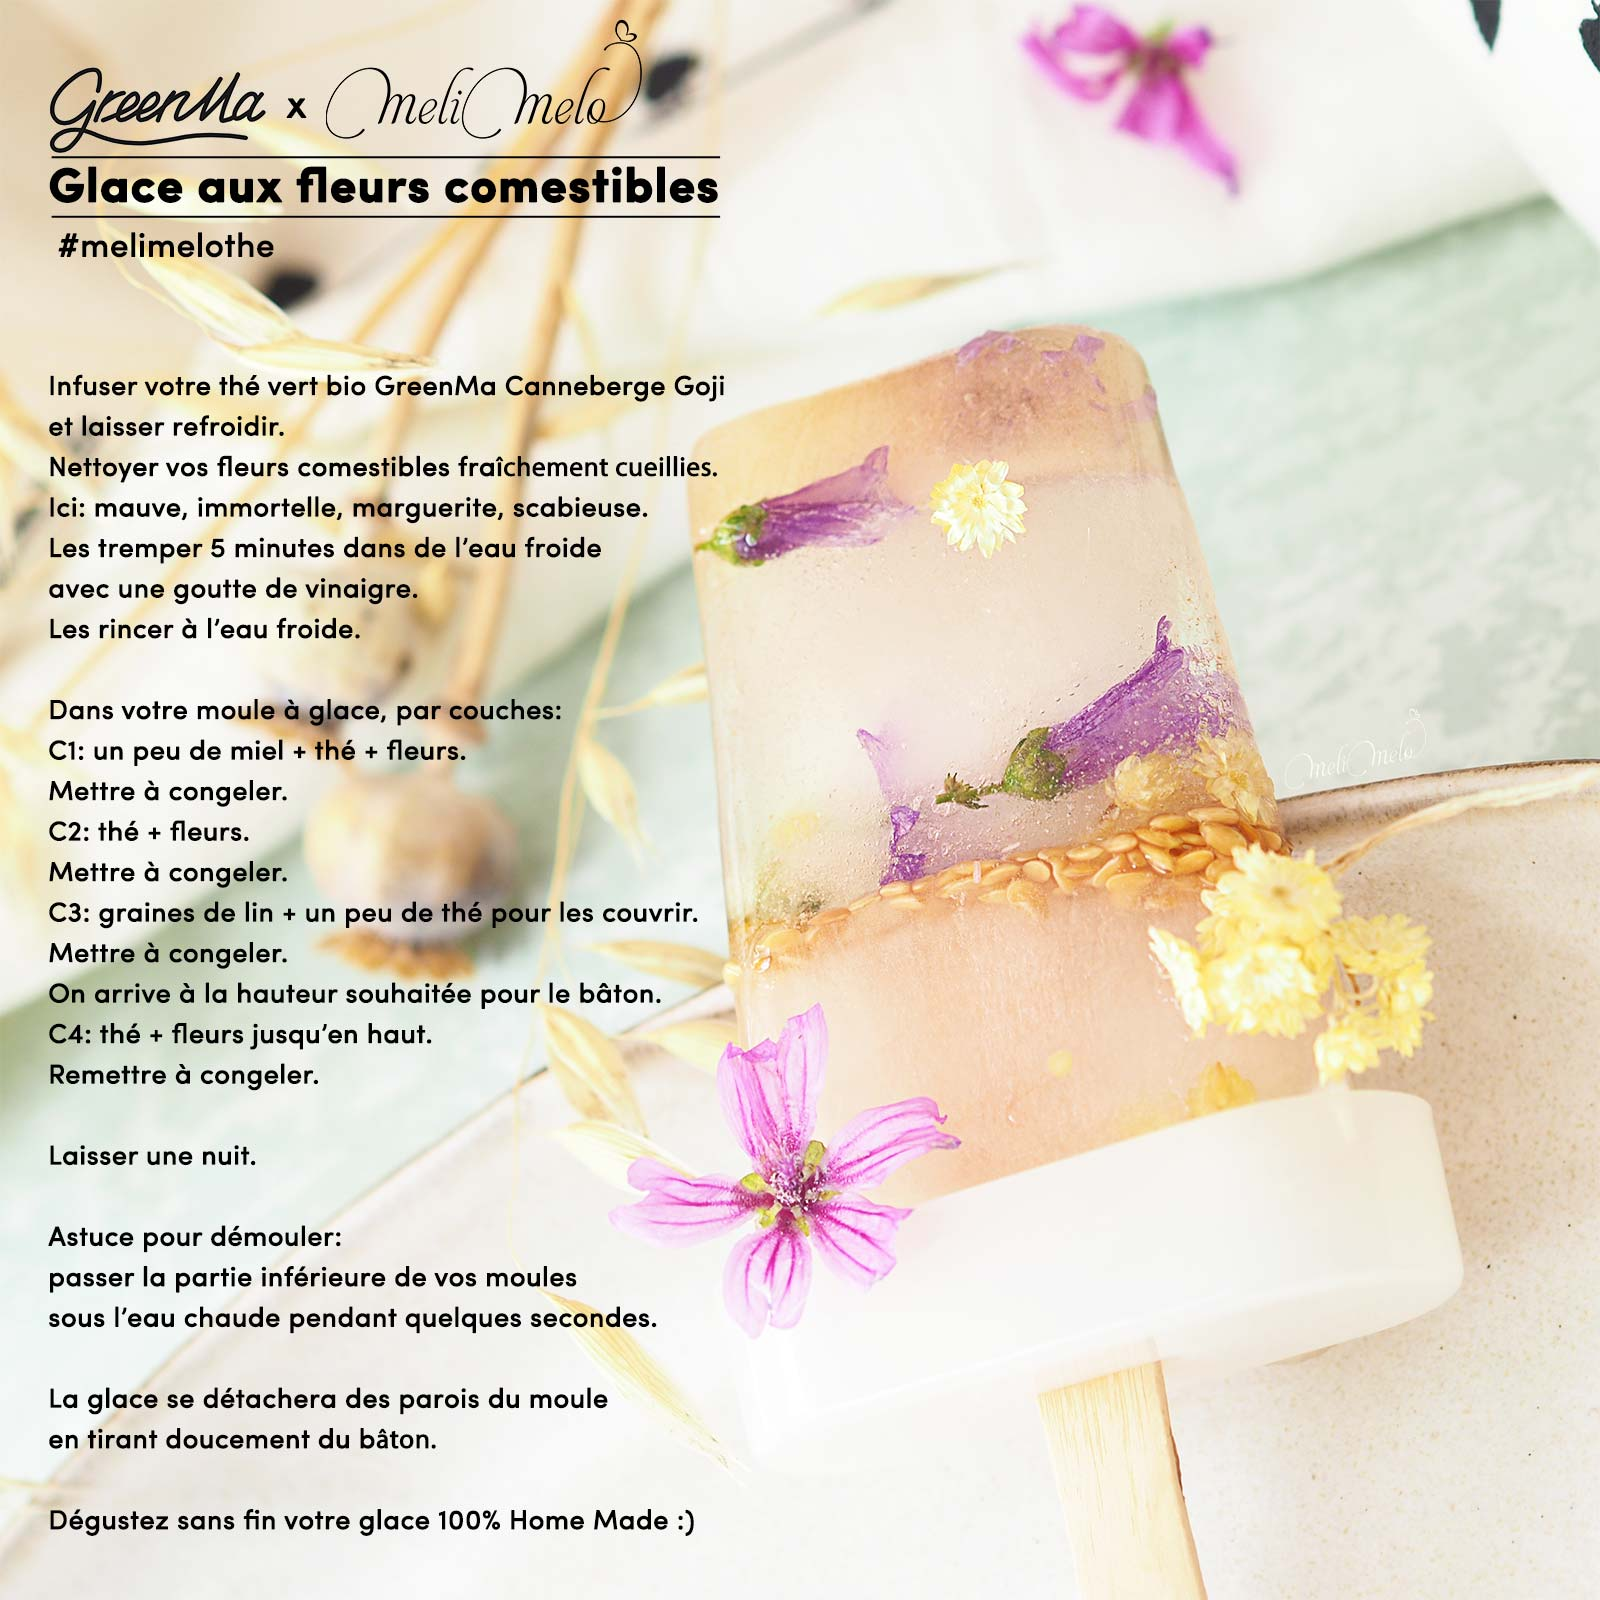 recette-glace-fleurs-comestibles-the-vert-bio-canneberge-goji-greenma-france-laboutiquedemelimelo